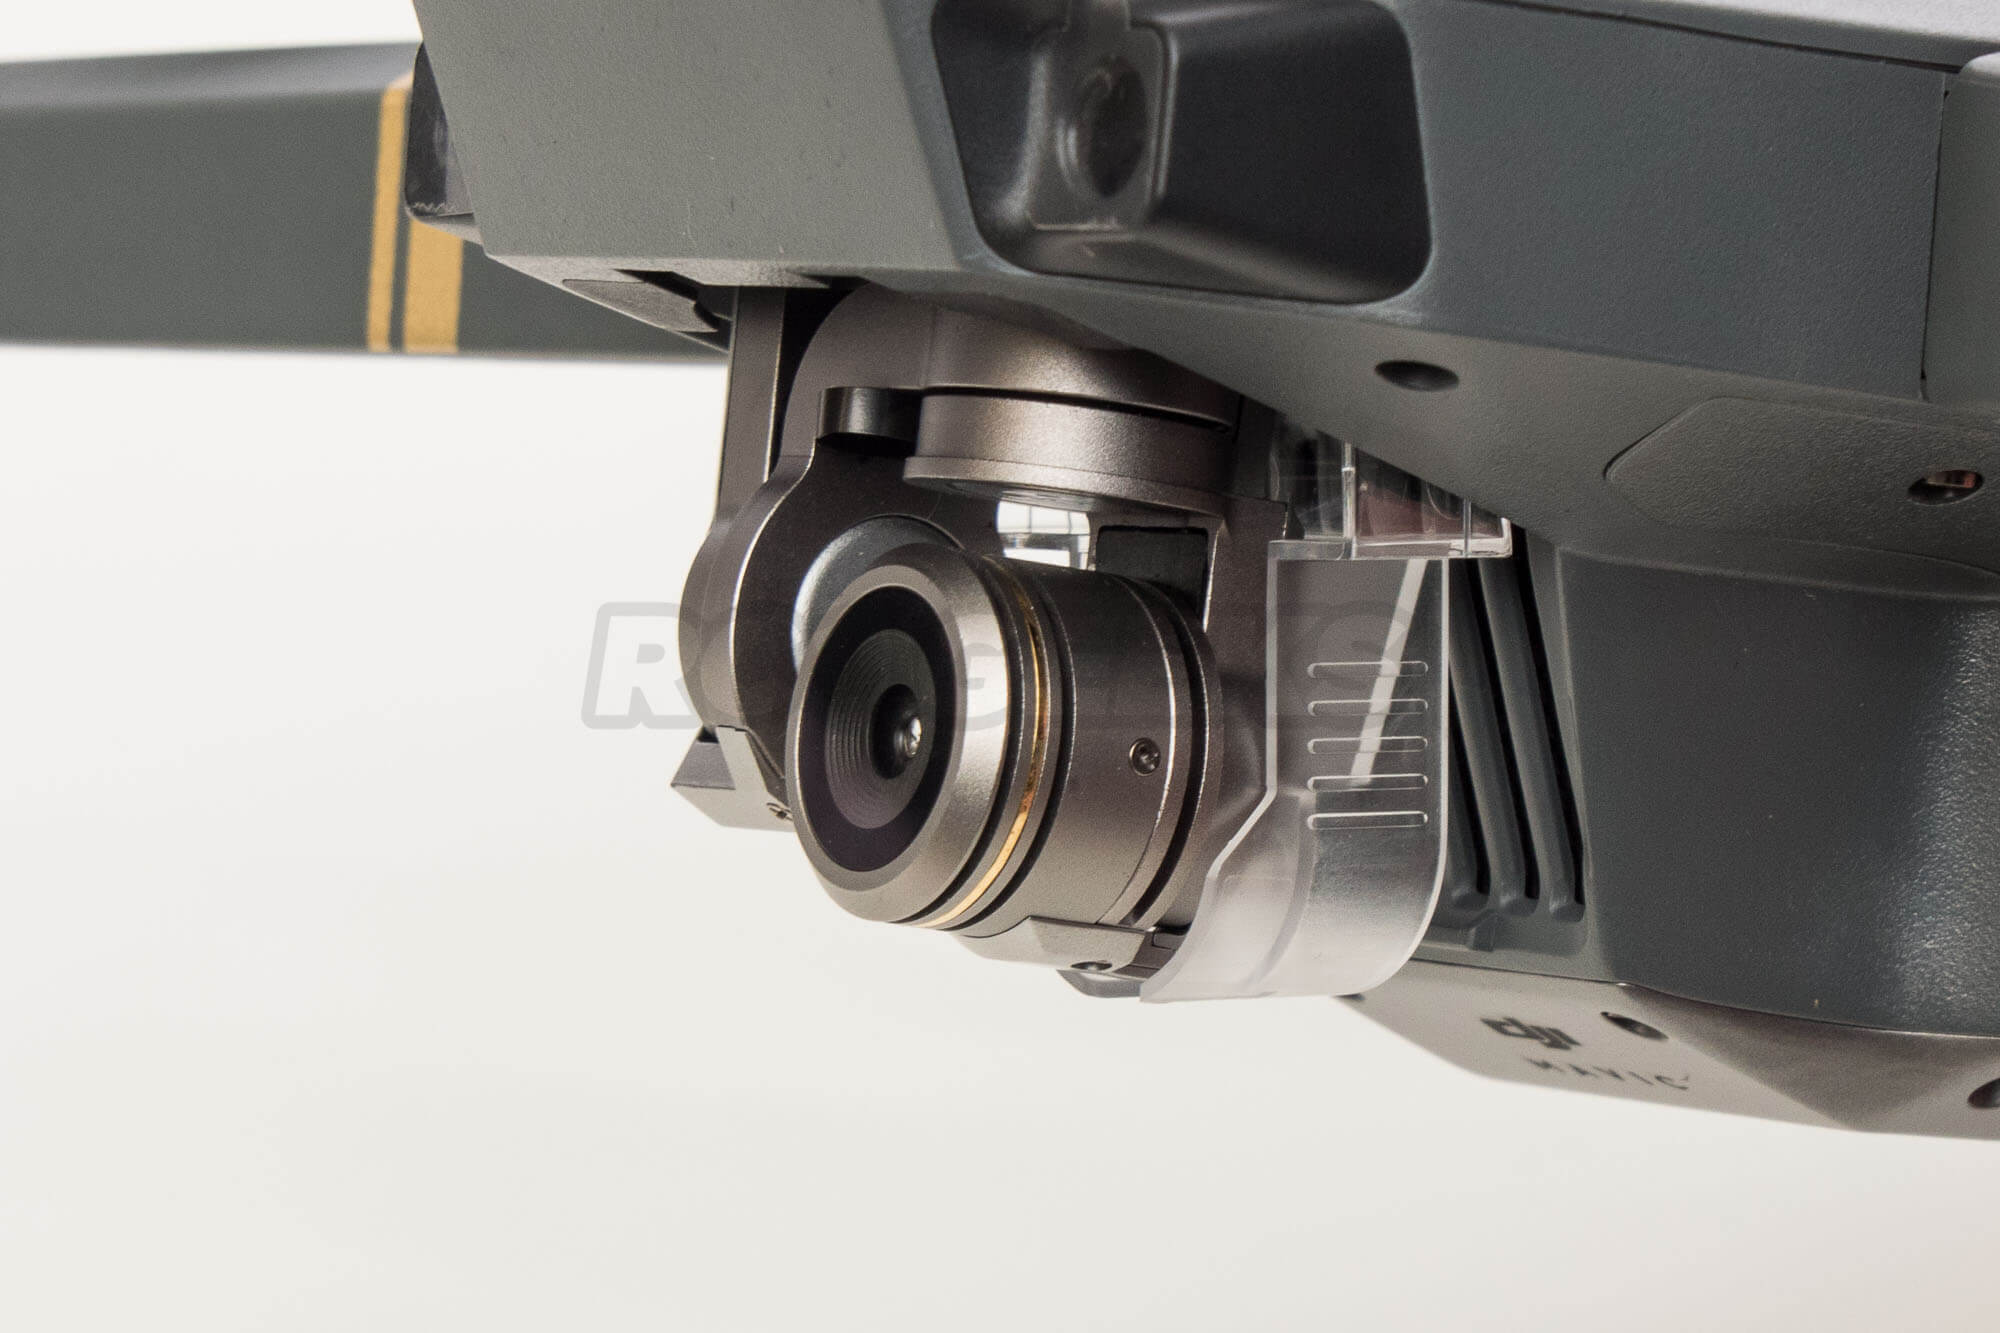 DJI-Mavic-pro-aircraft-camera-gimbal-lock-holder